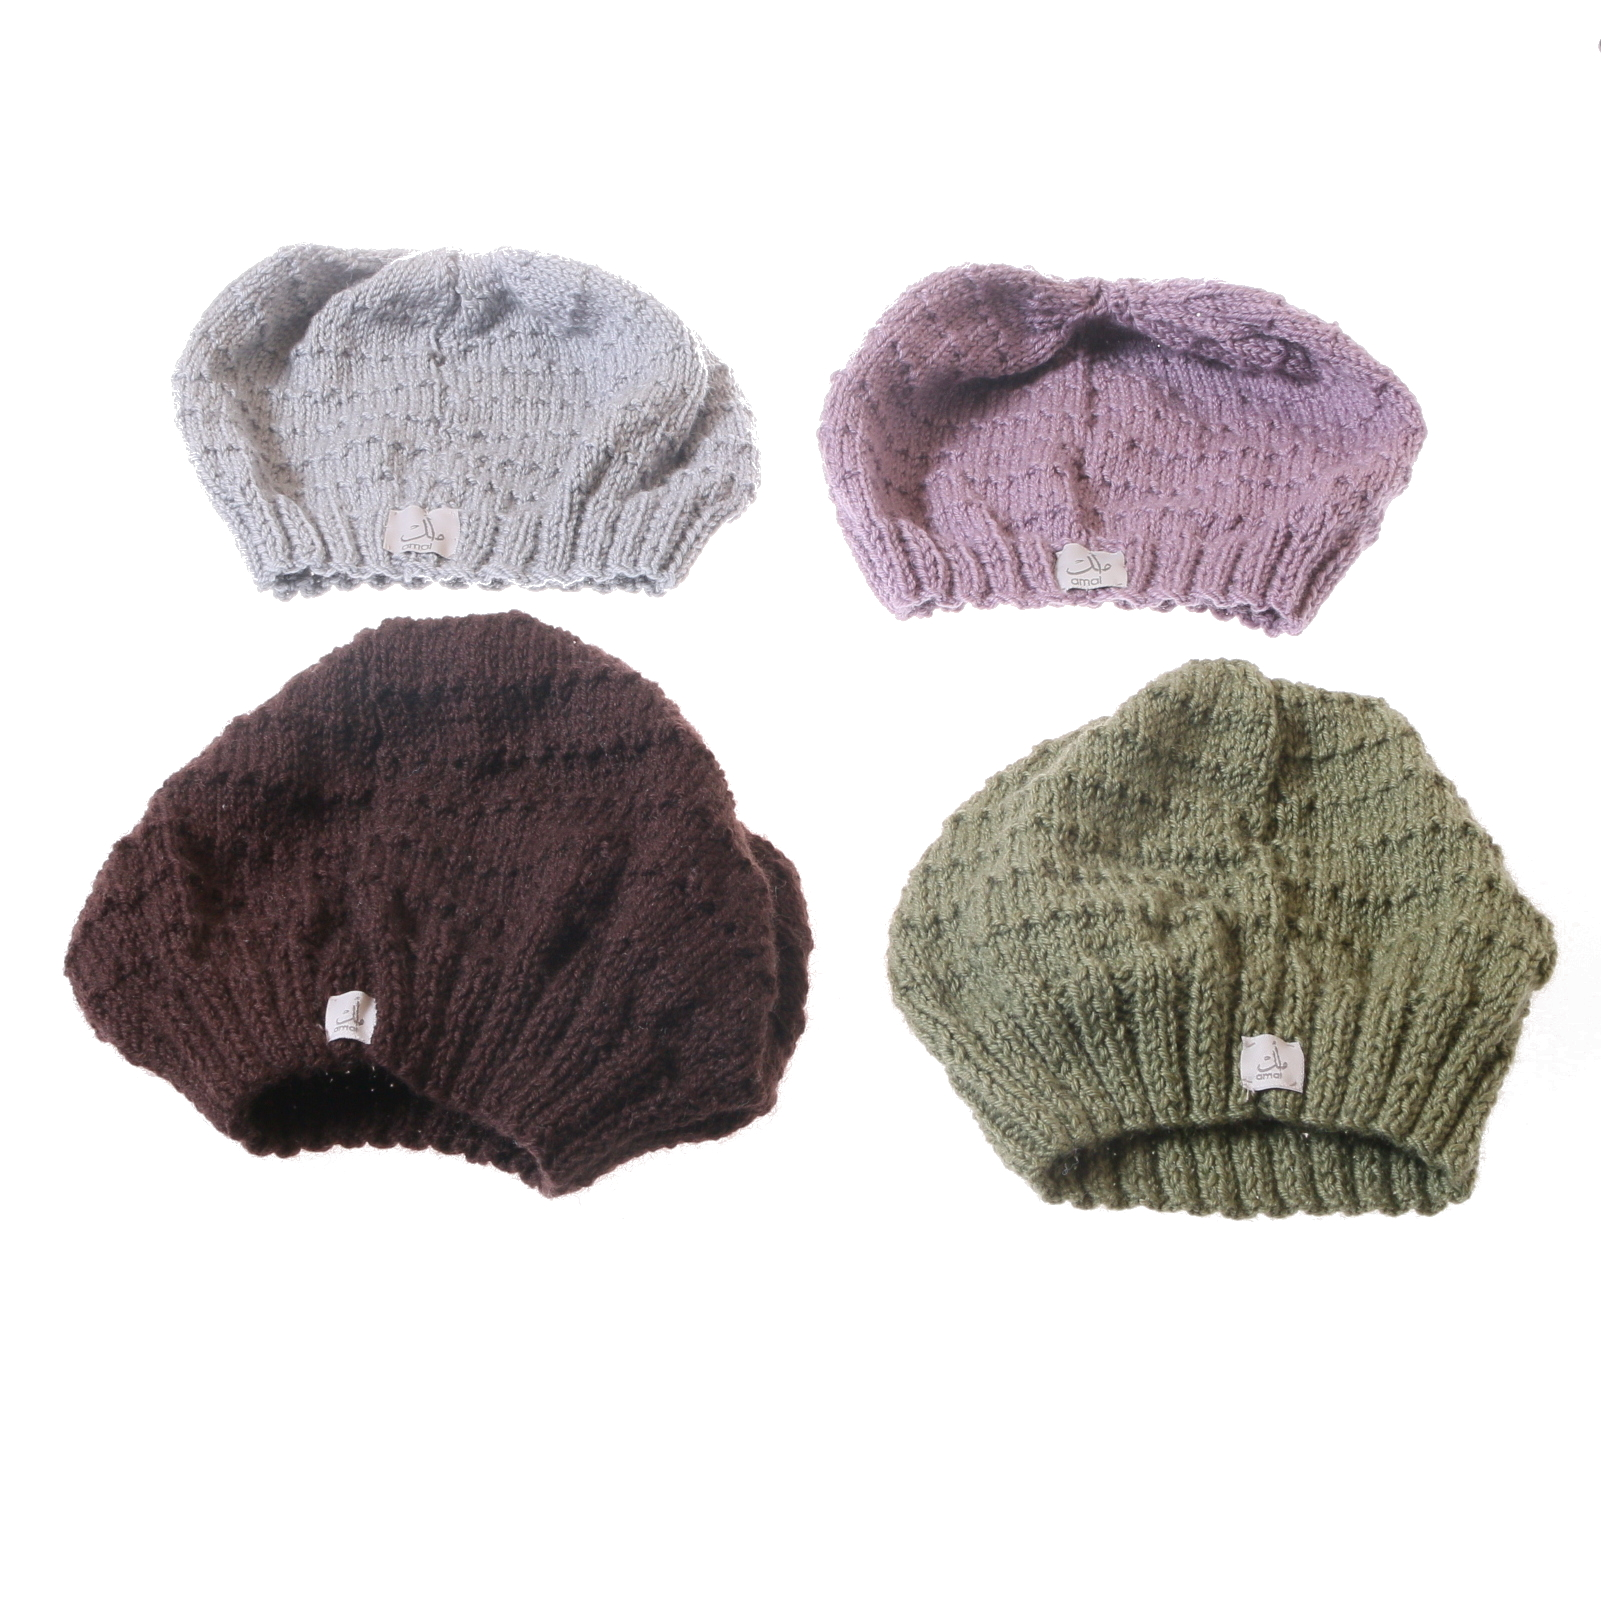 beanies by Syrian refugees - Amal Project